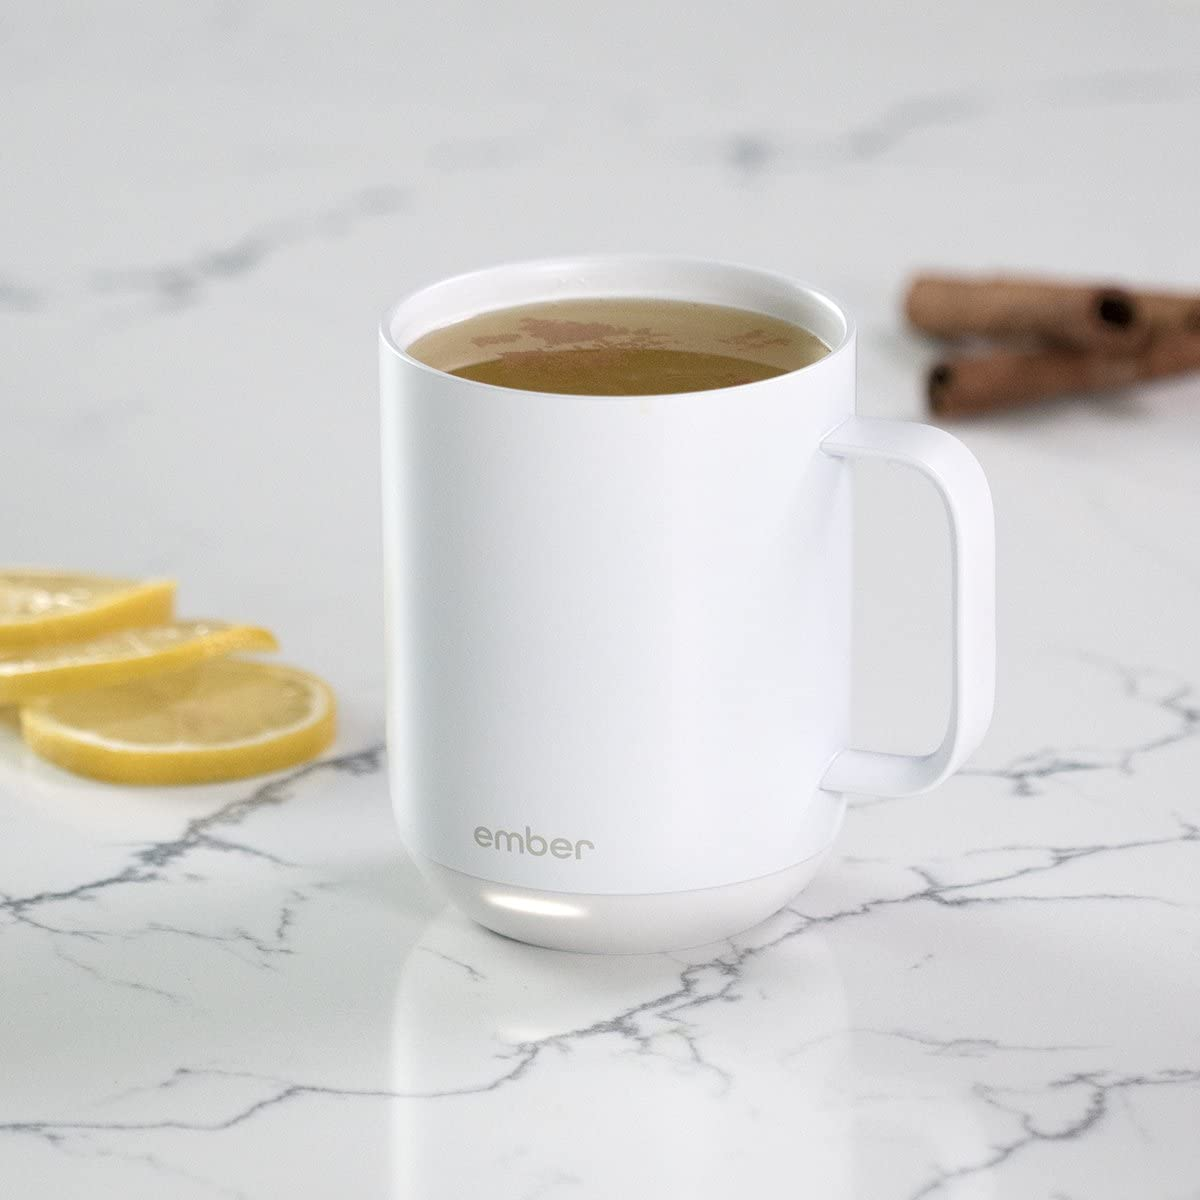 Ember-Temperature-Control-Smart-Mug